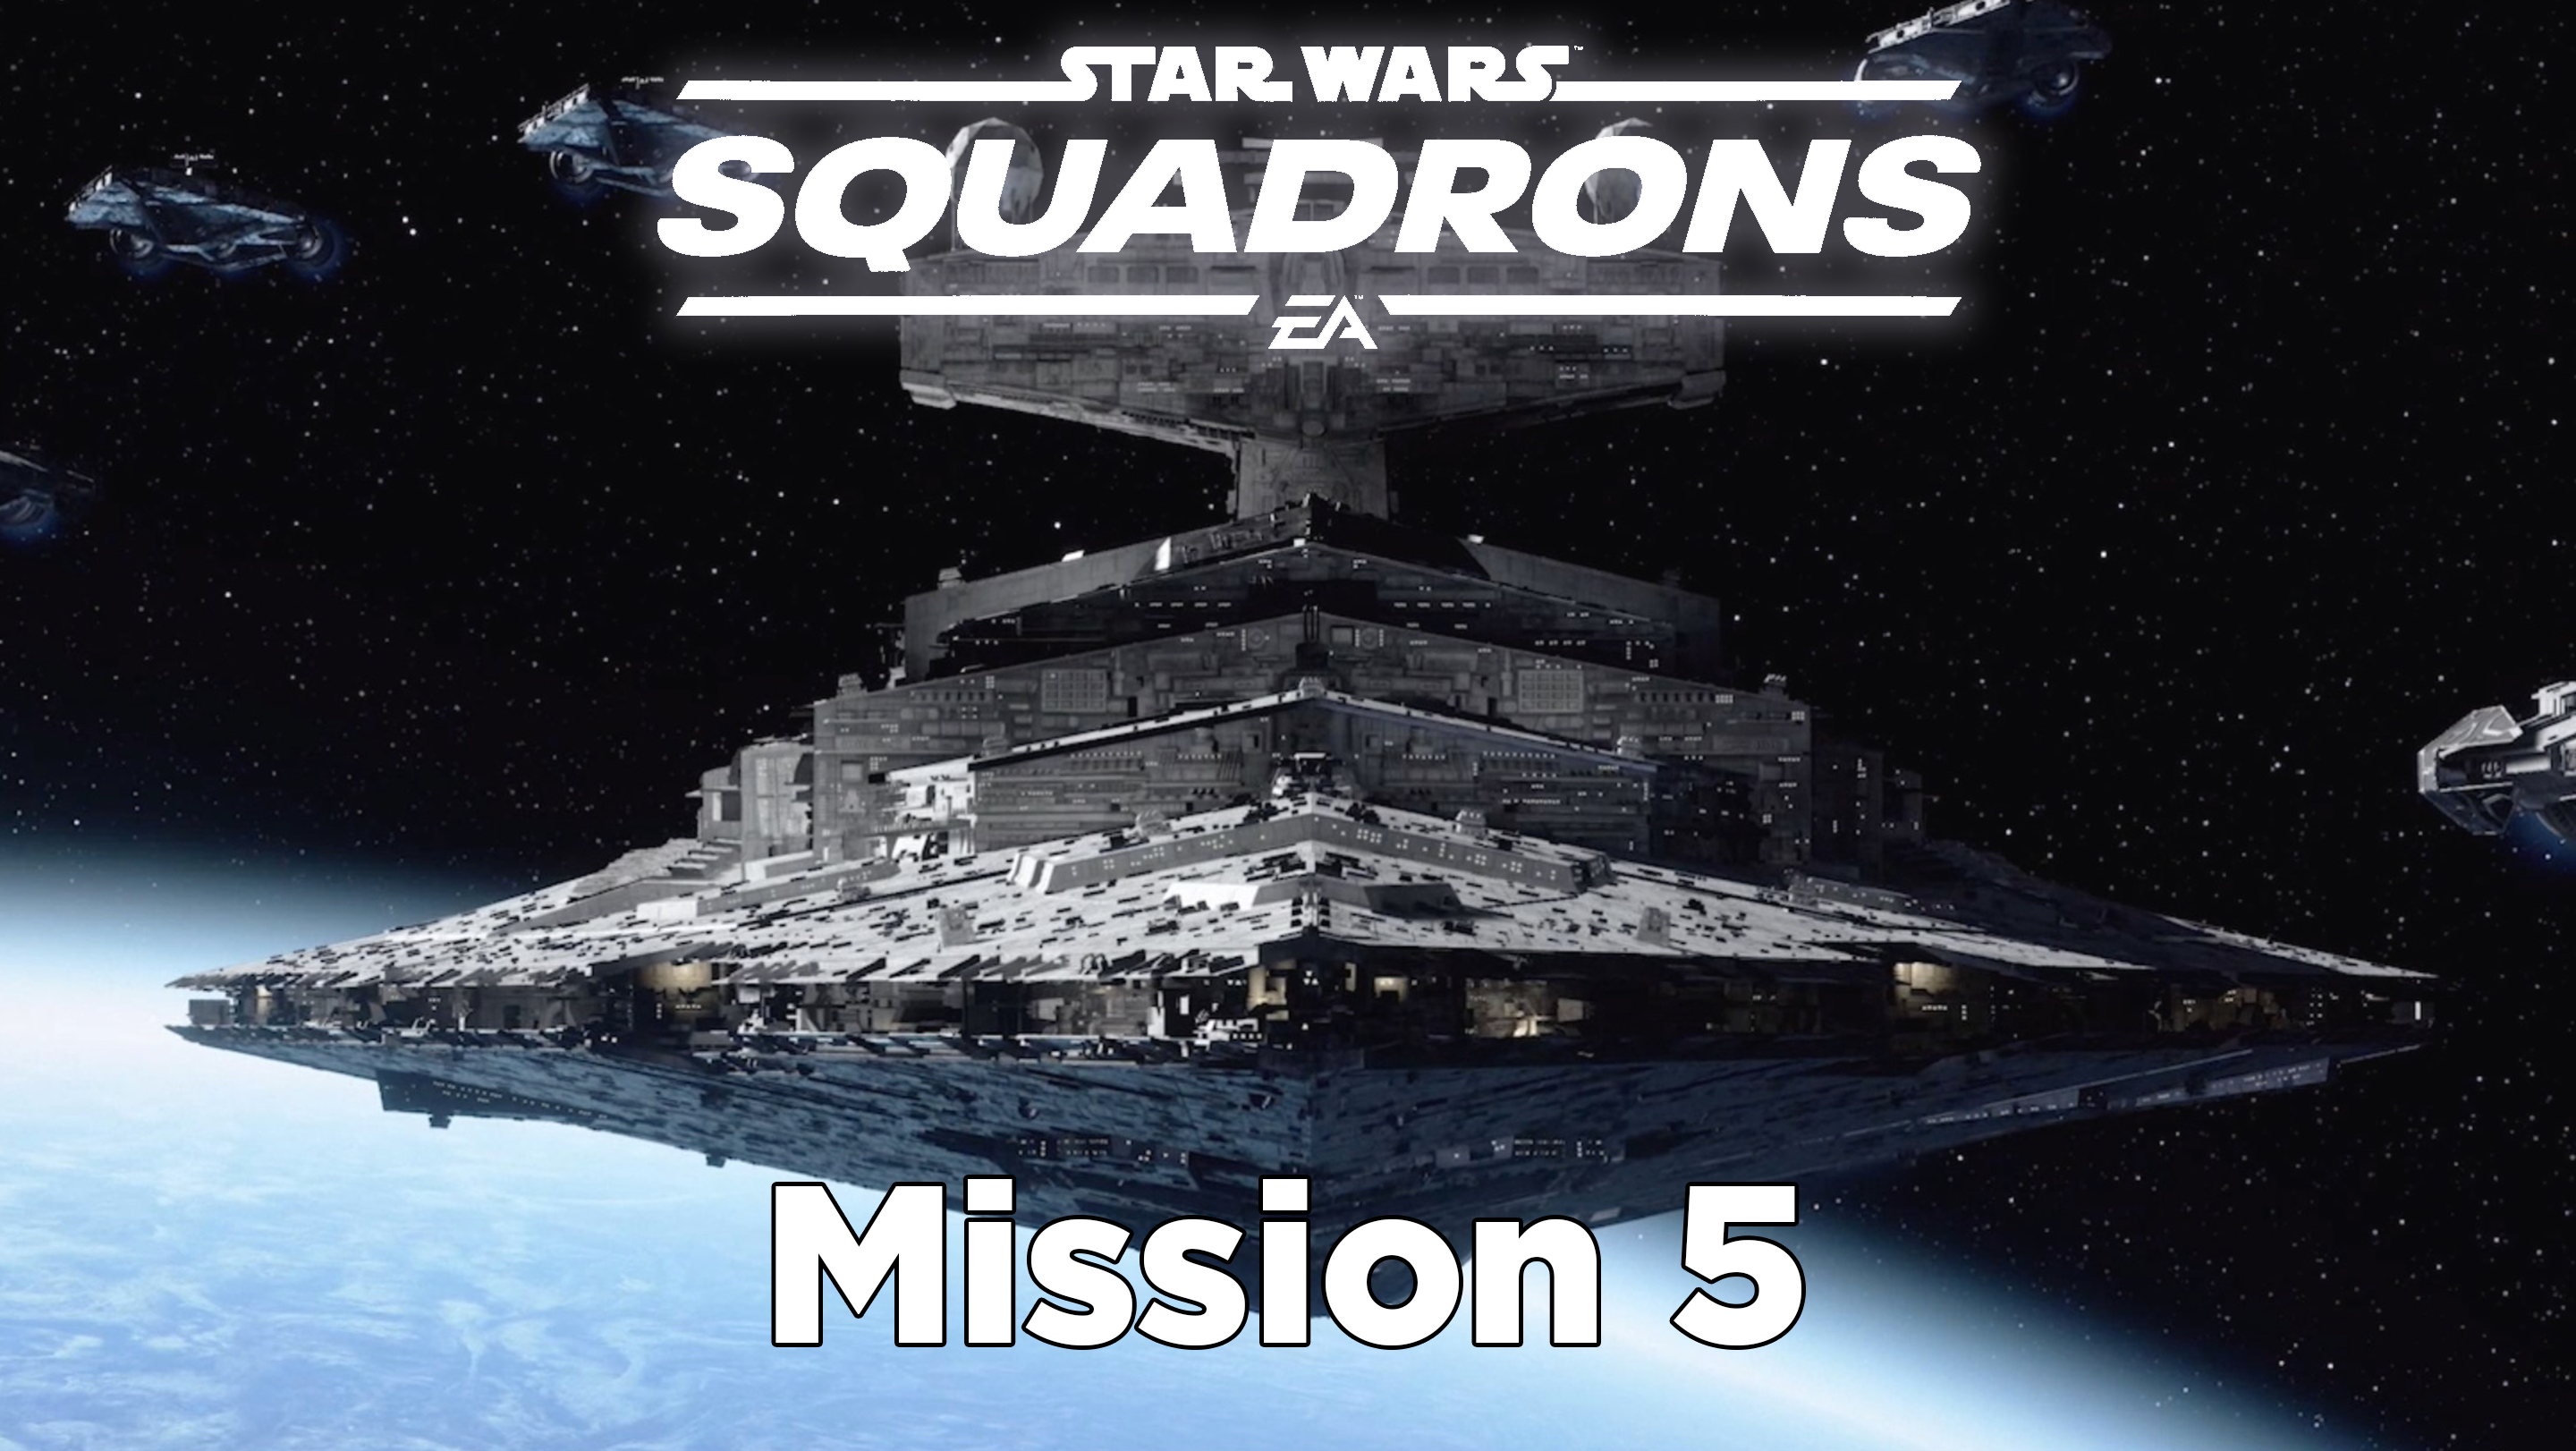 Star Wars Squadrons guide: Mission 5 – The Trail from Desevro tips and walkthrough